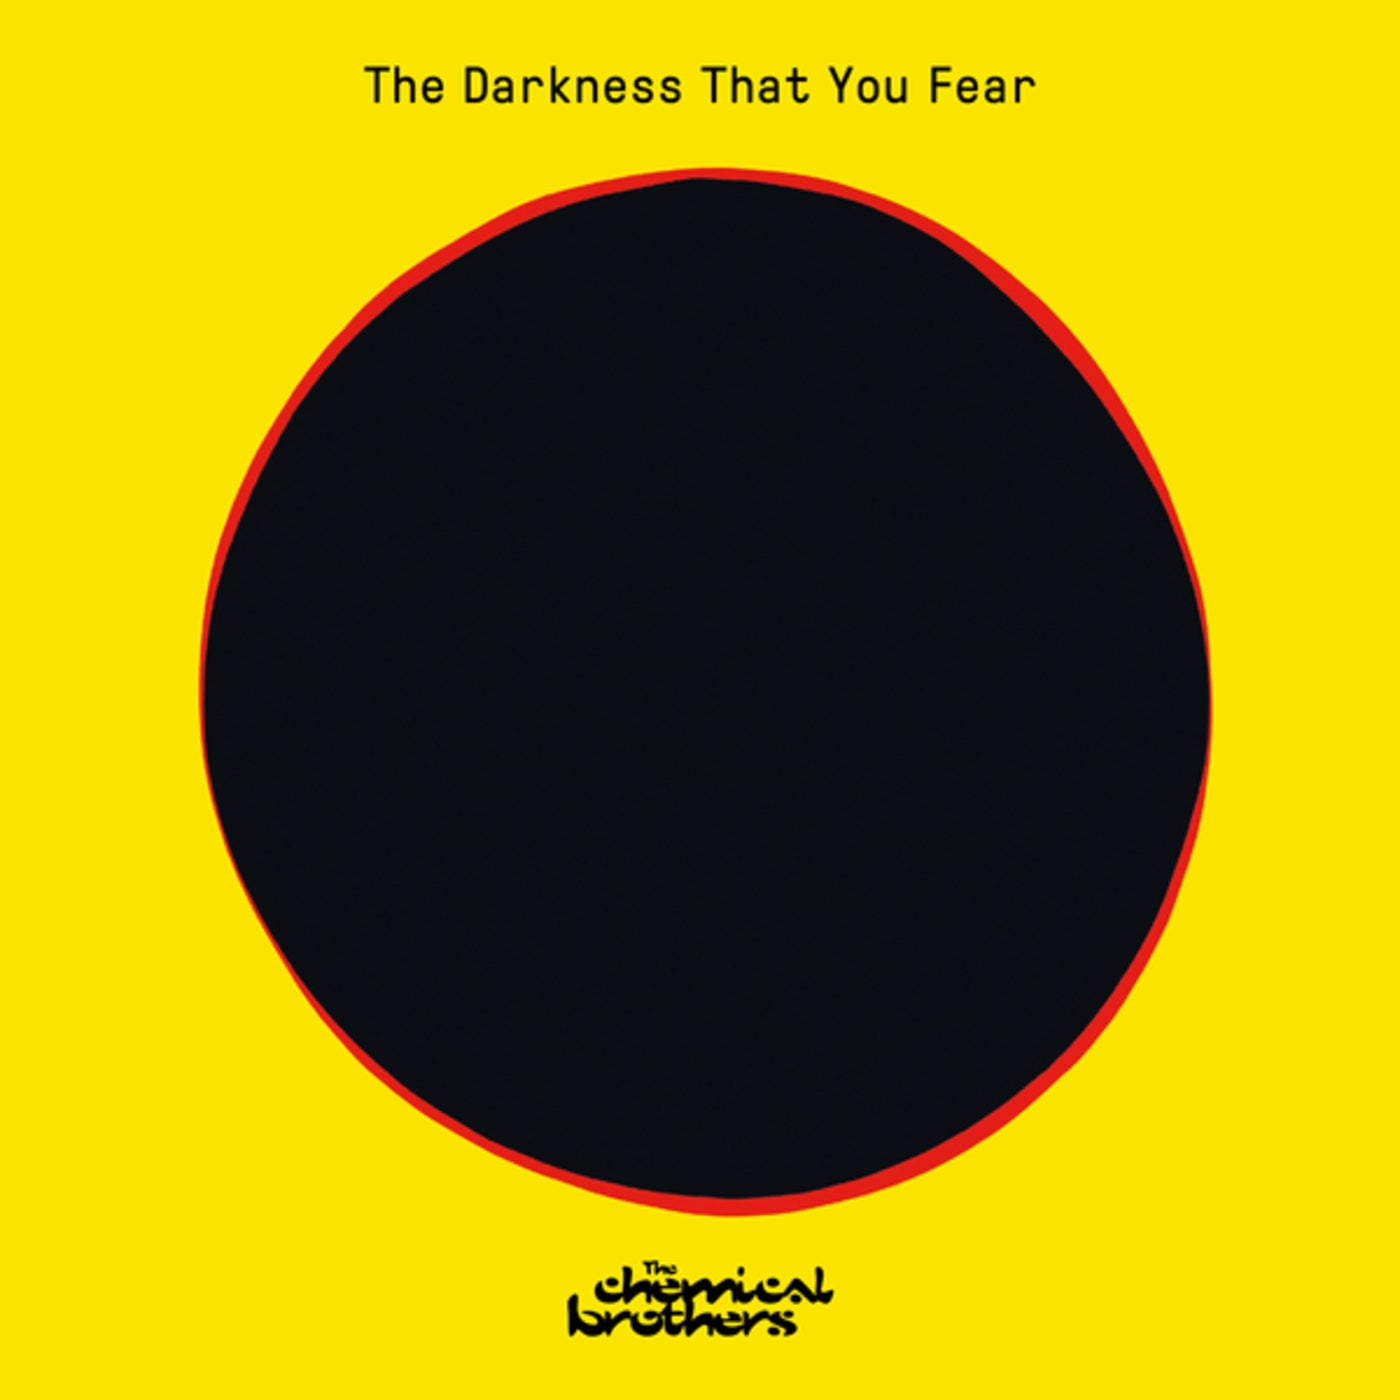 The Chemical Brothers - The Darkness That You Fear (2021)